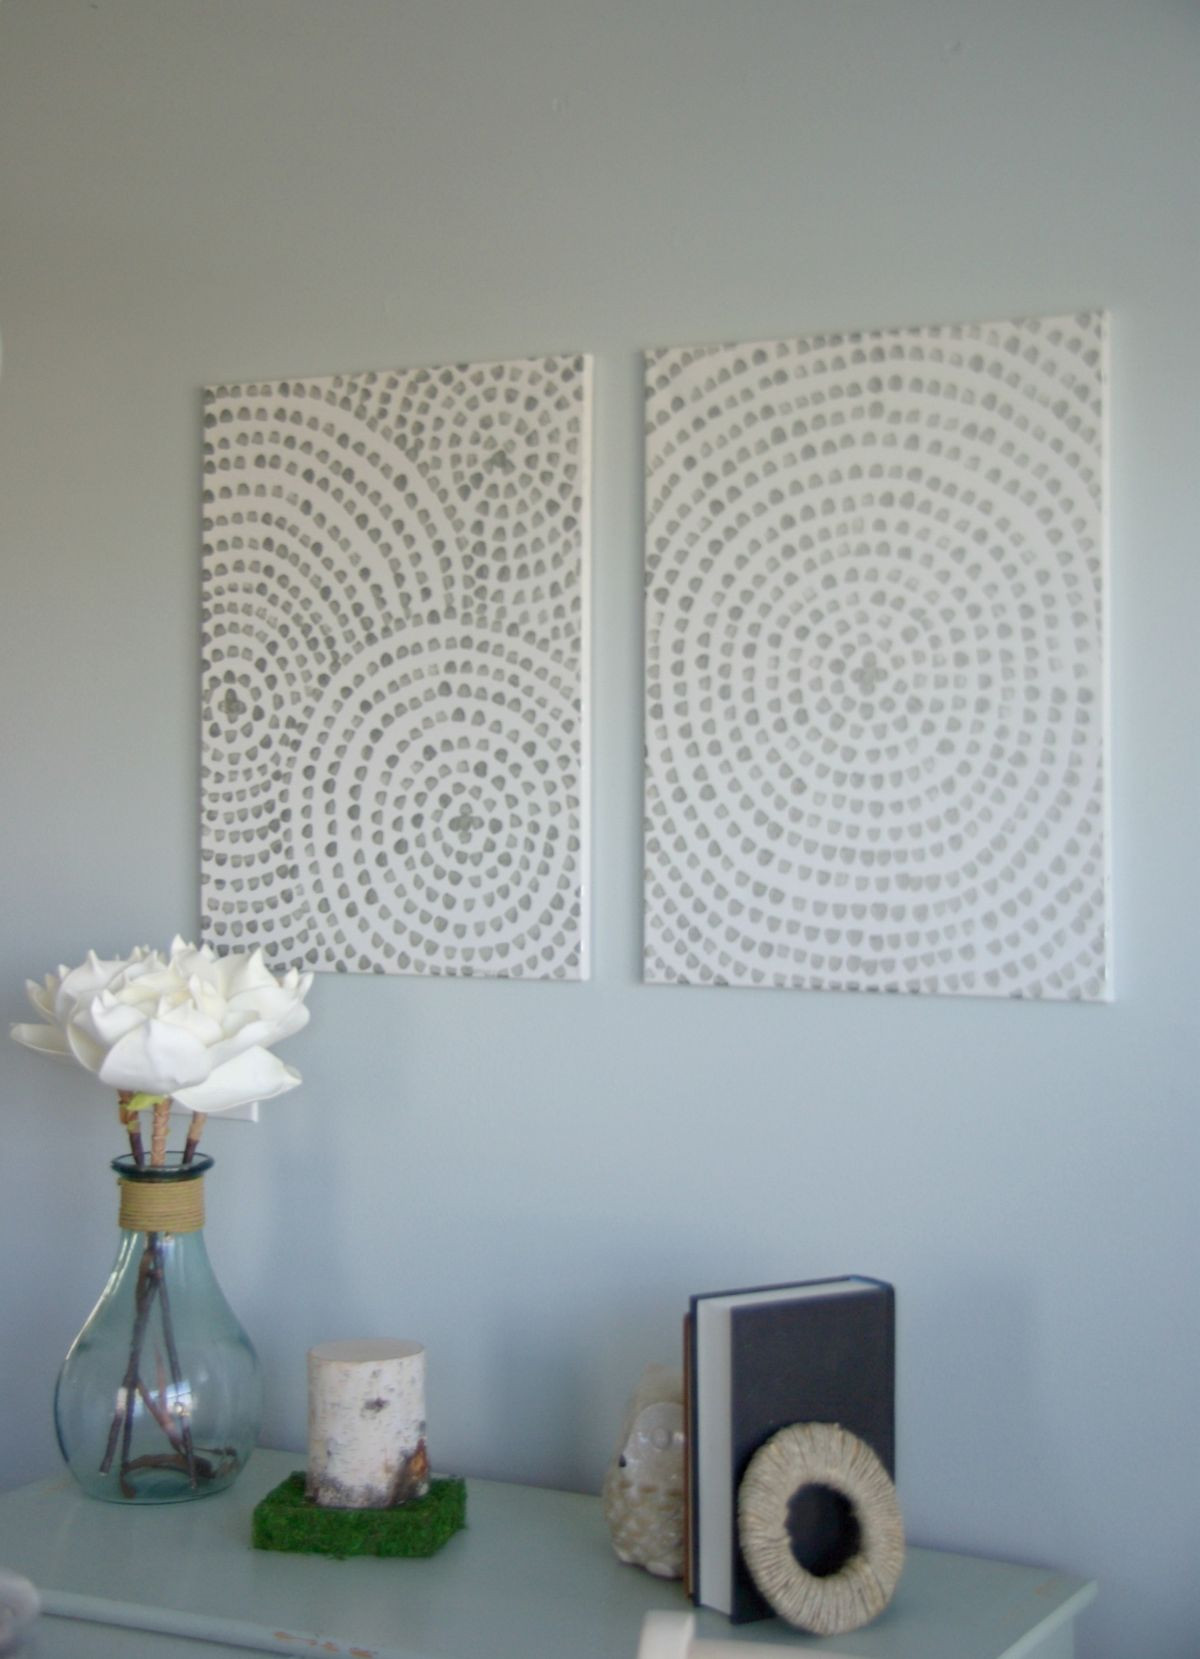 Best ideas about Wall Decors DIY . Save or Pin DIY Canvas Wall Art A Low Cost Way To Add Art To Your Home Now.